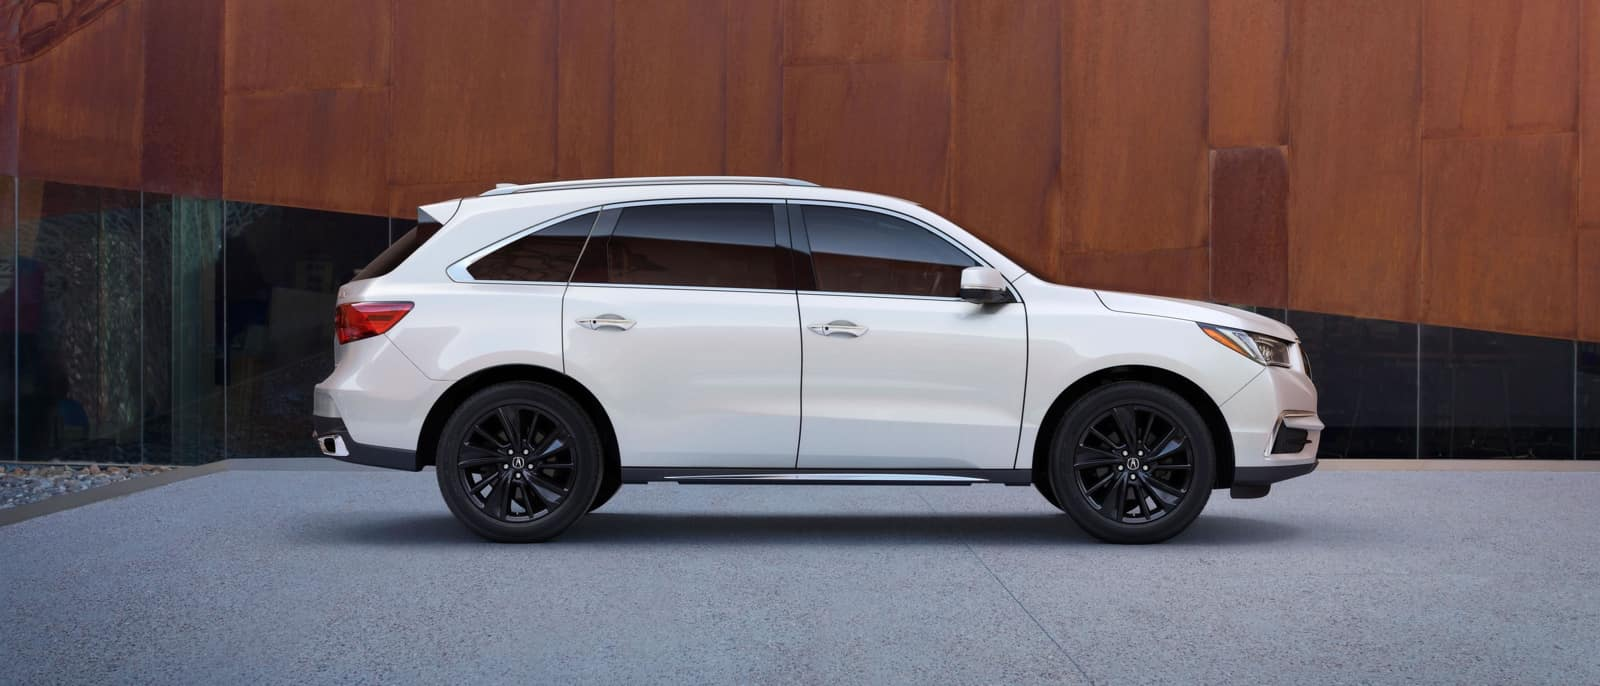 2018 Acura MDX white exterior side view